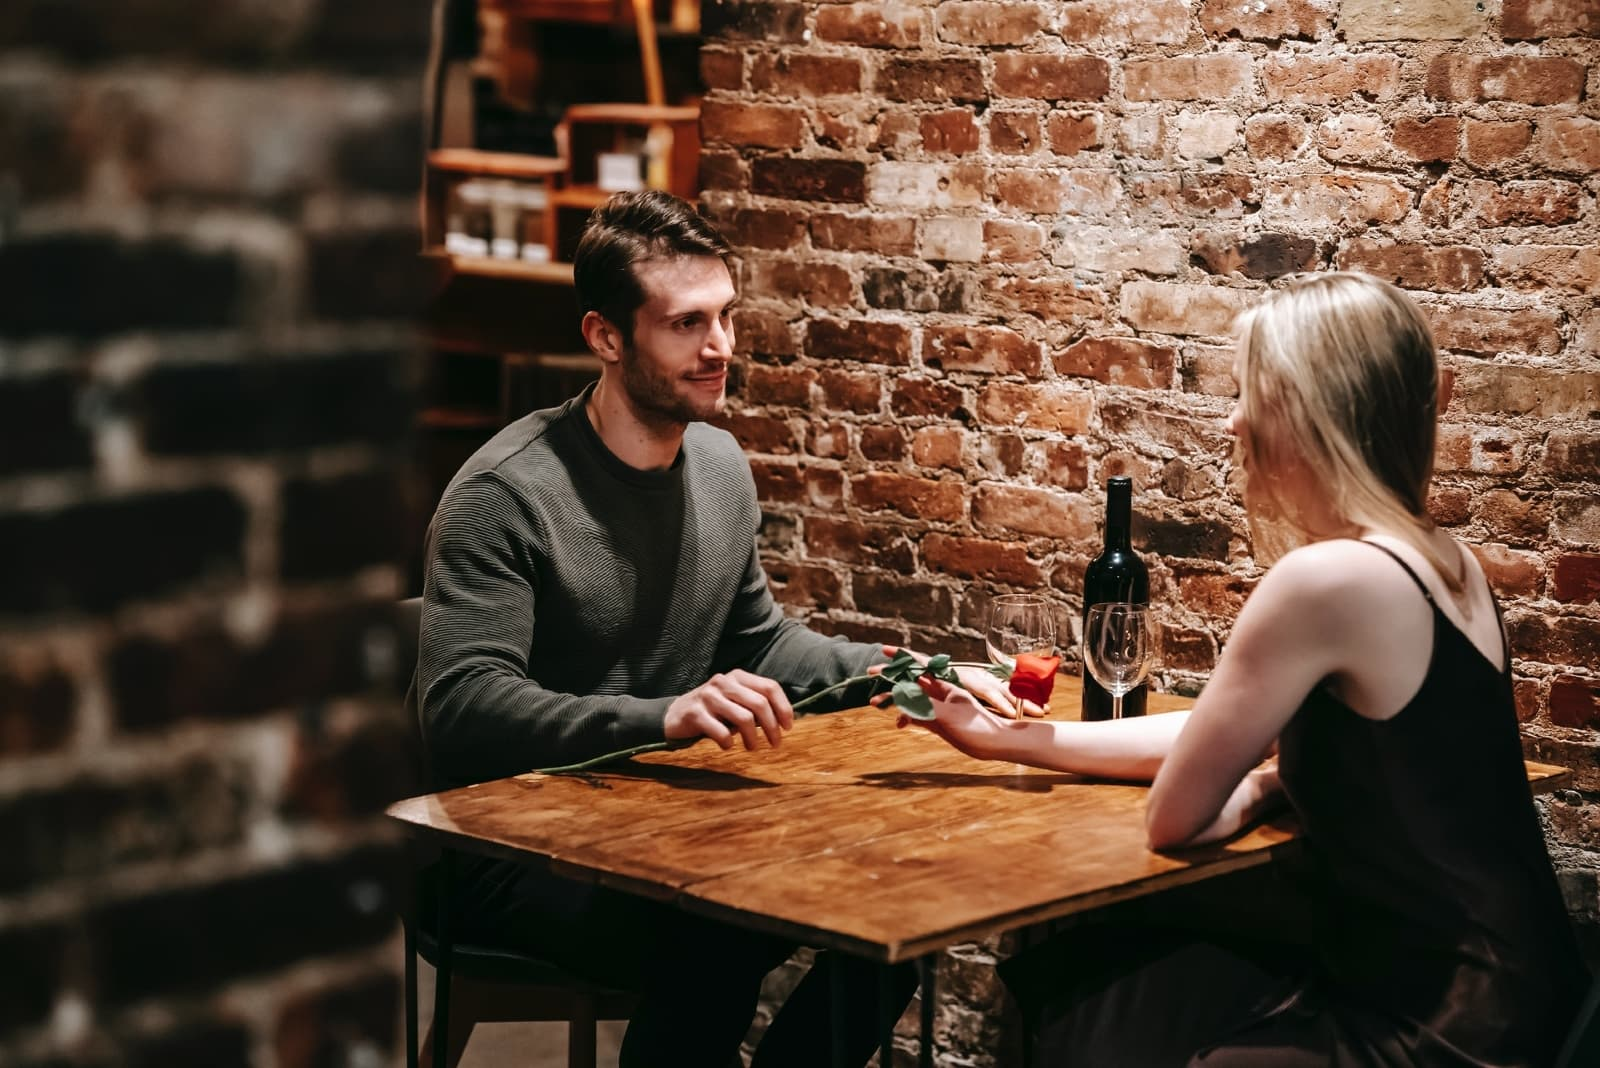 man giving rose to woman while sitting at table